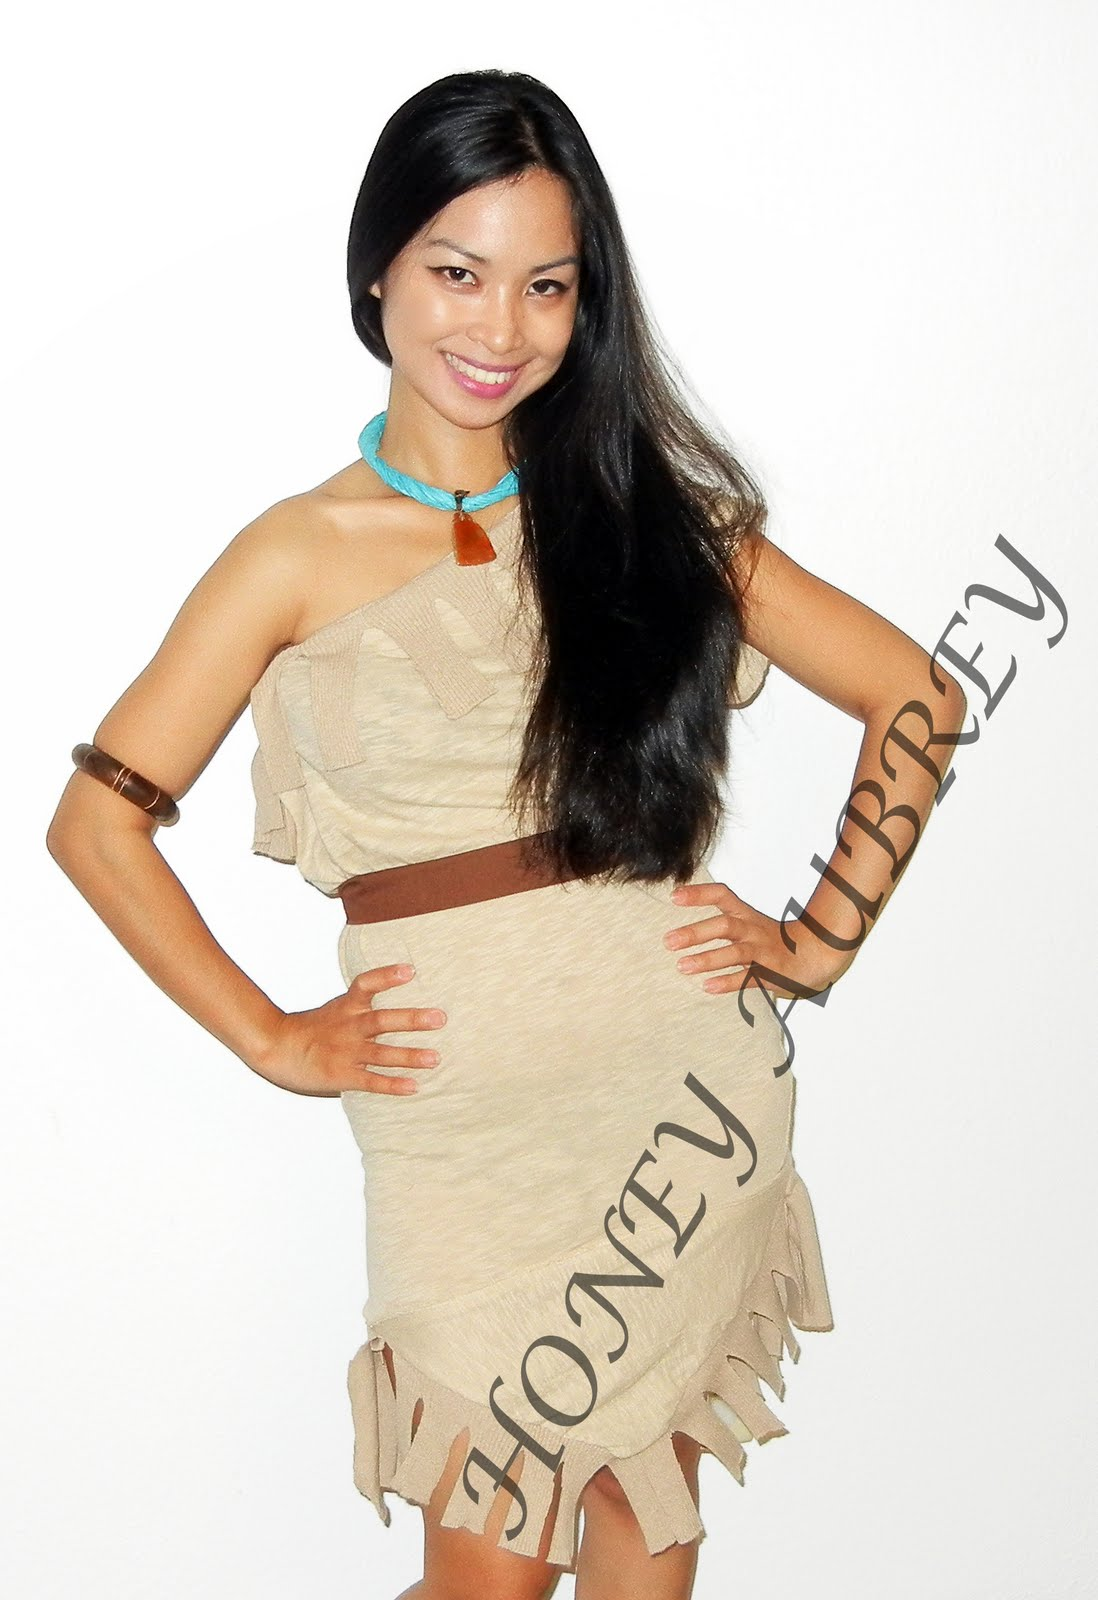 pocahontas and the mythical indian woman essay